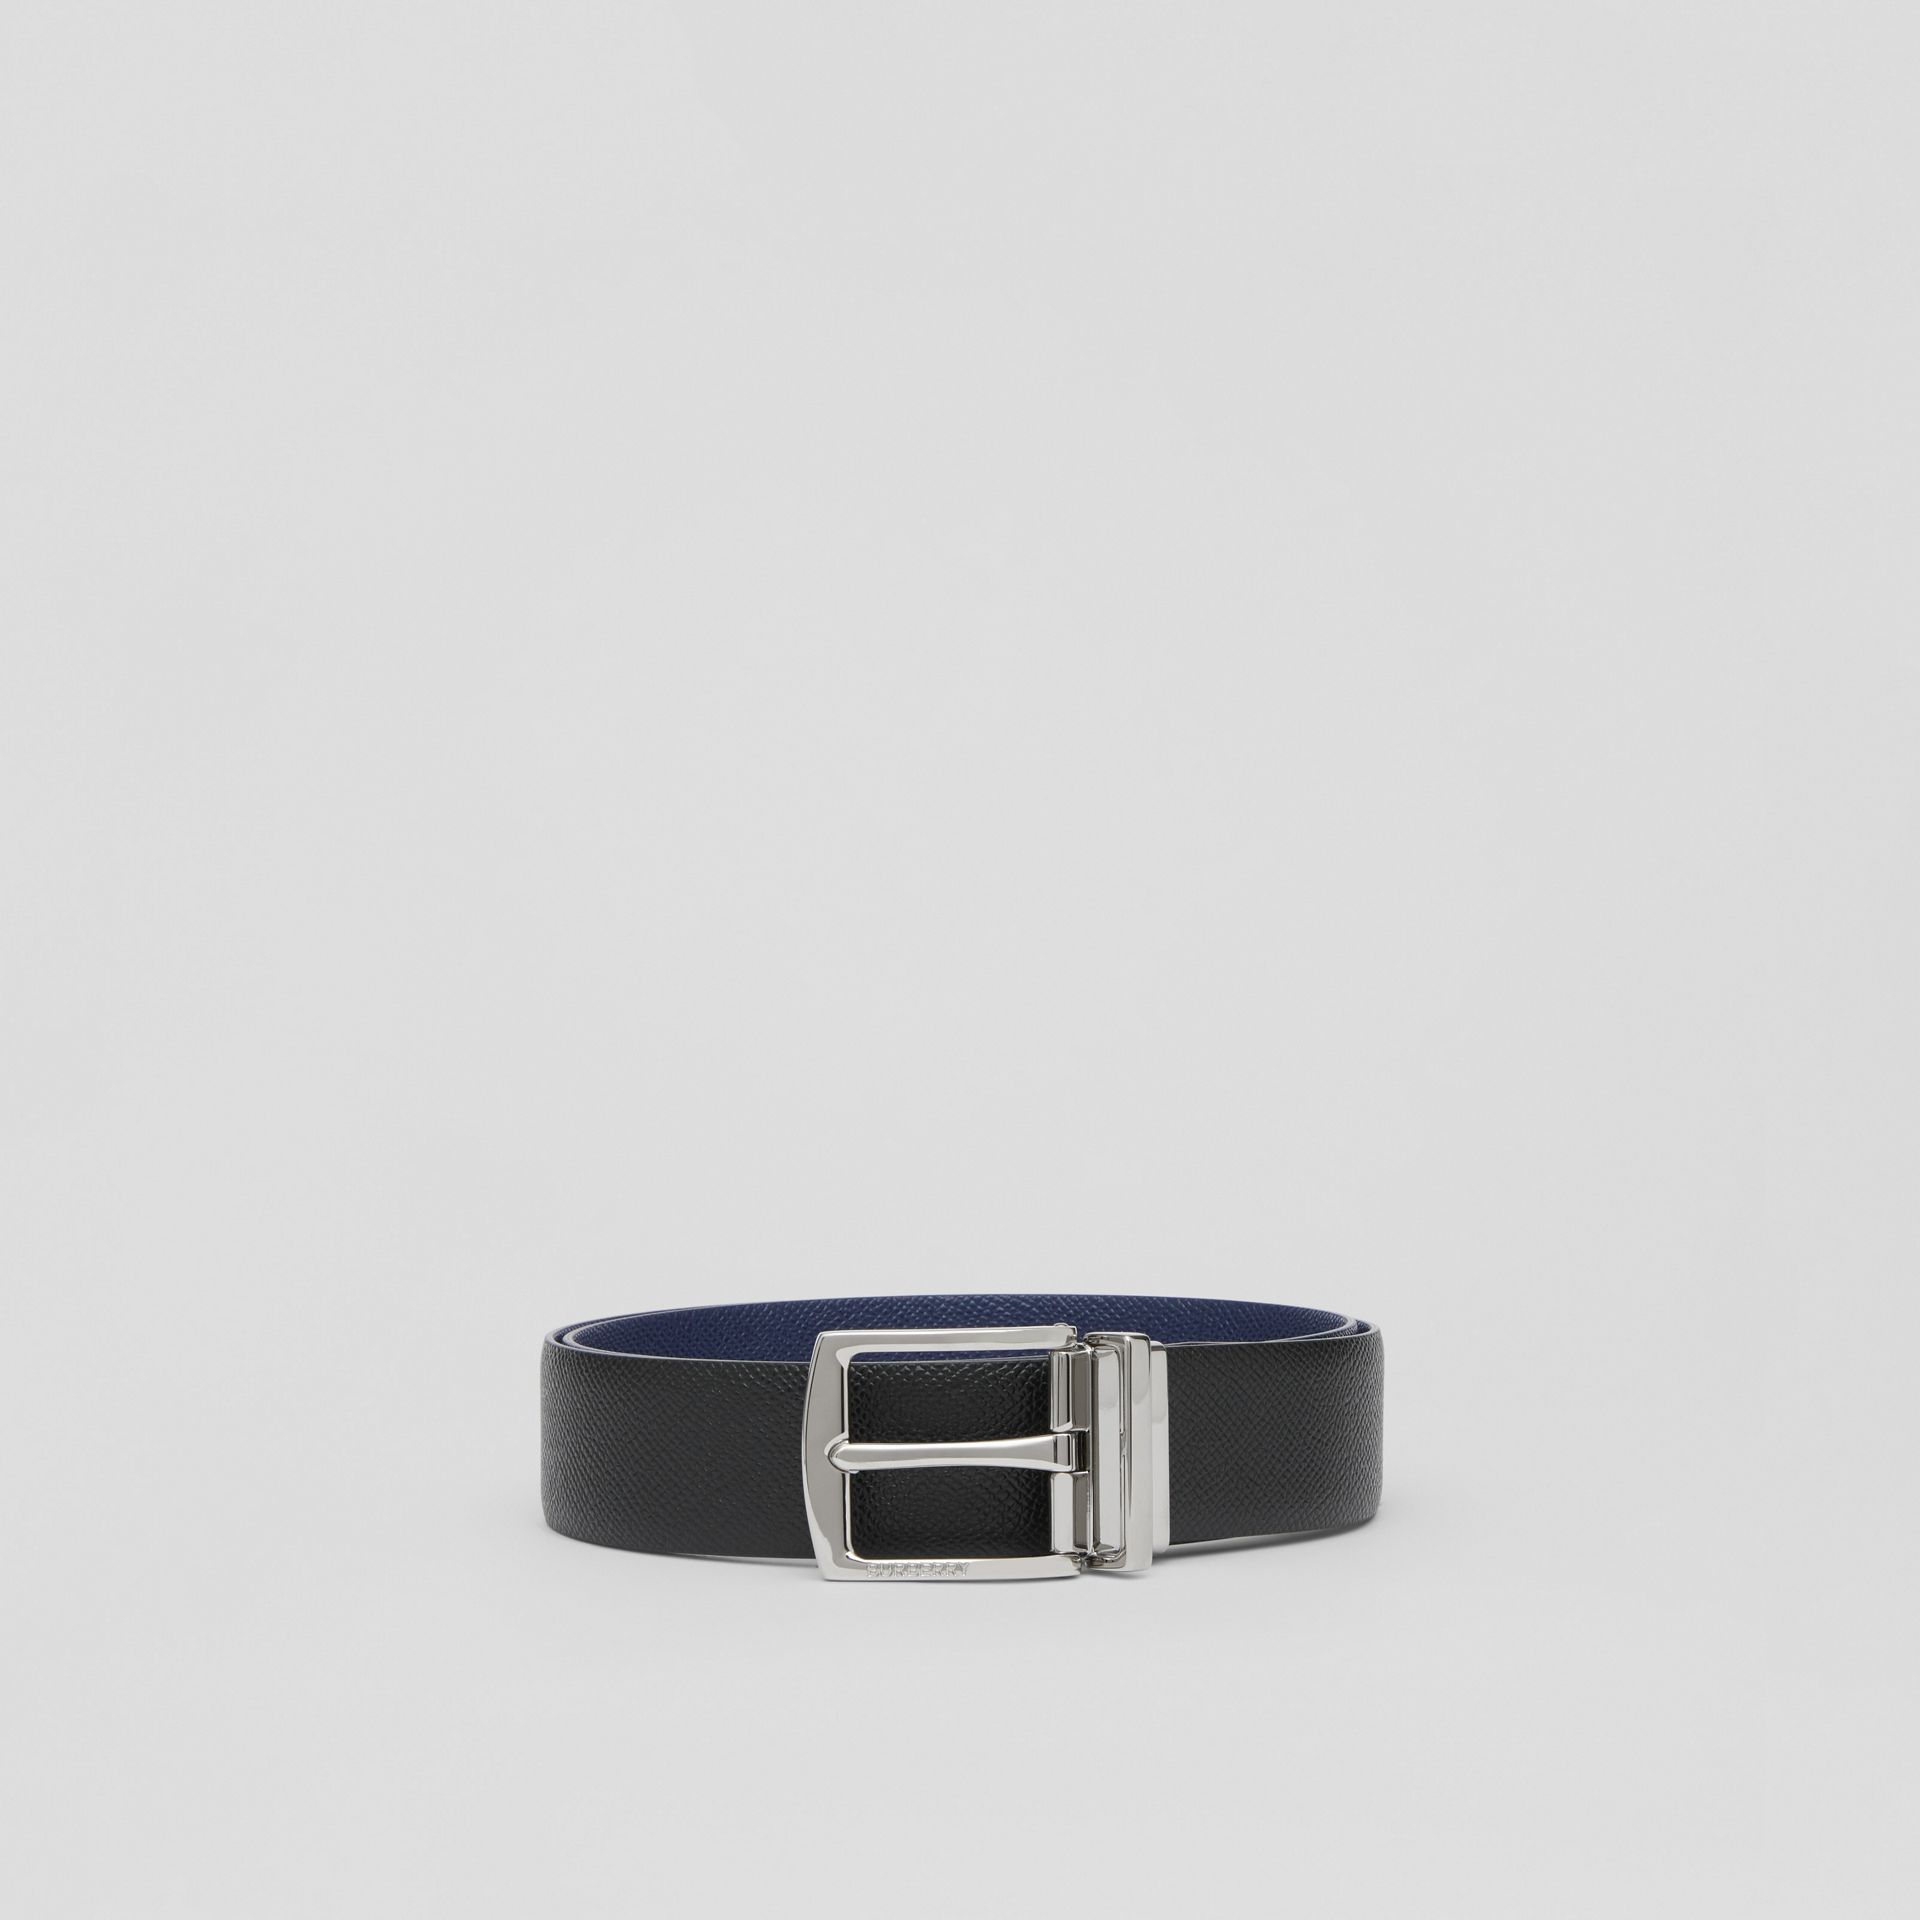 Reversible Grainy Leather Belt in Black/navy - Men | Burberry - gallery image 3